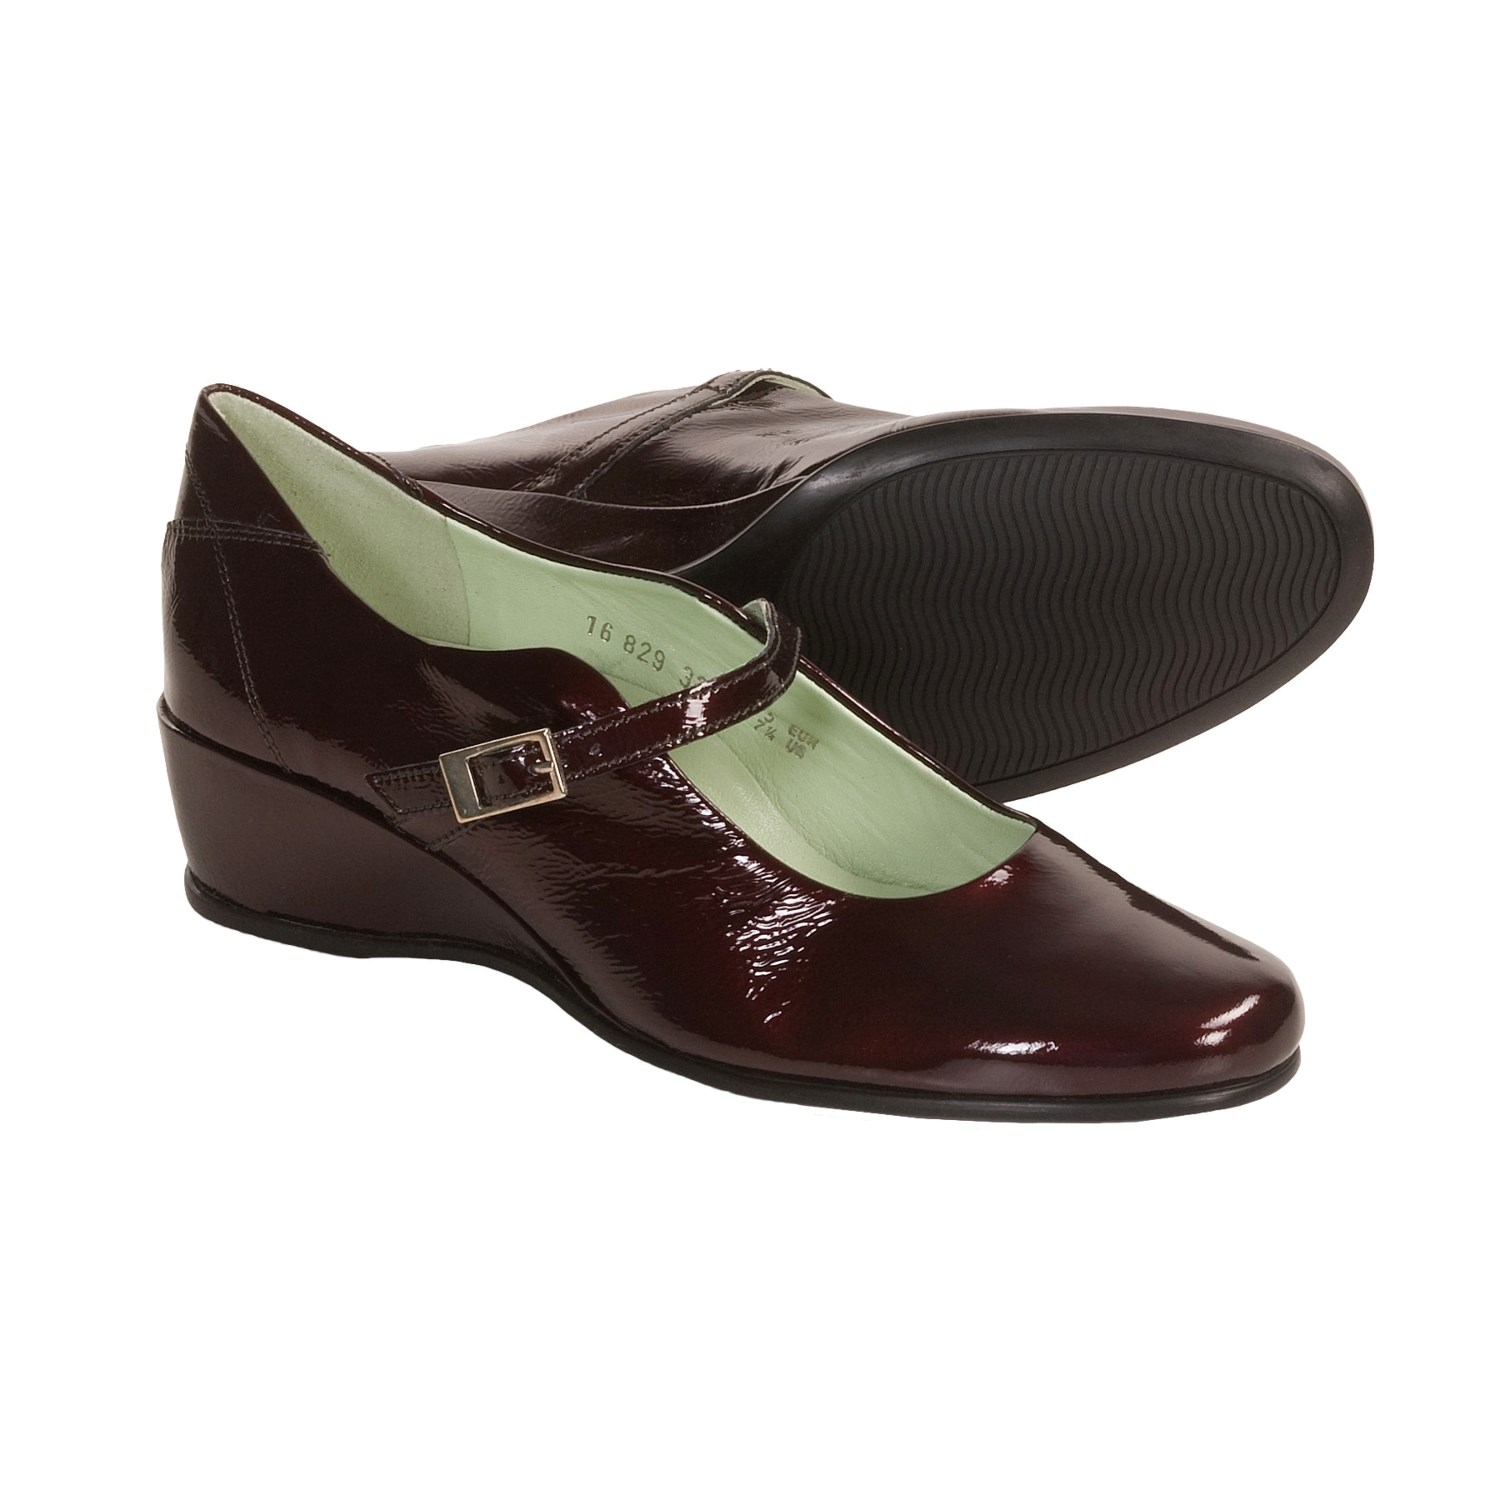 Mephisto Jaika Shoes - Mary Janes, Patent Leather (For Women) in Wine